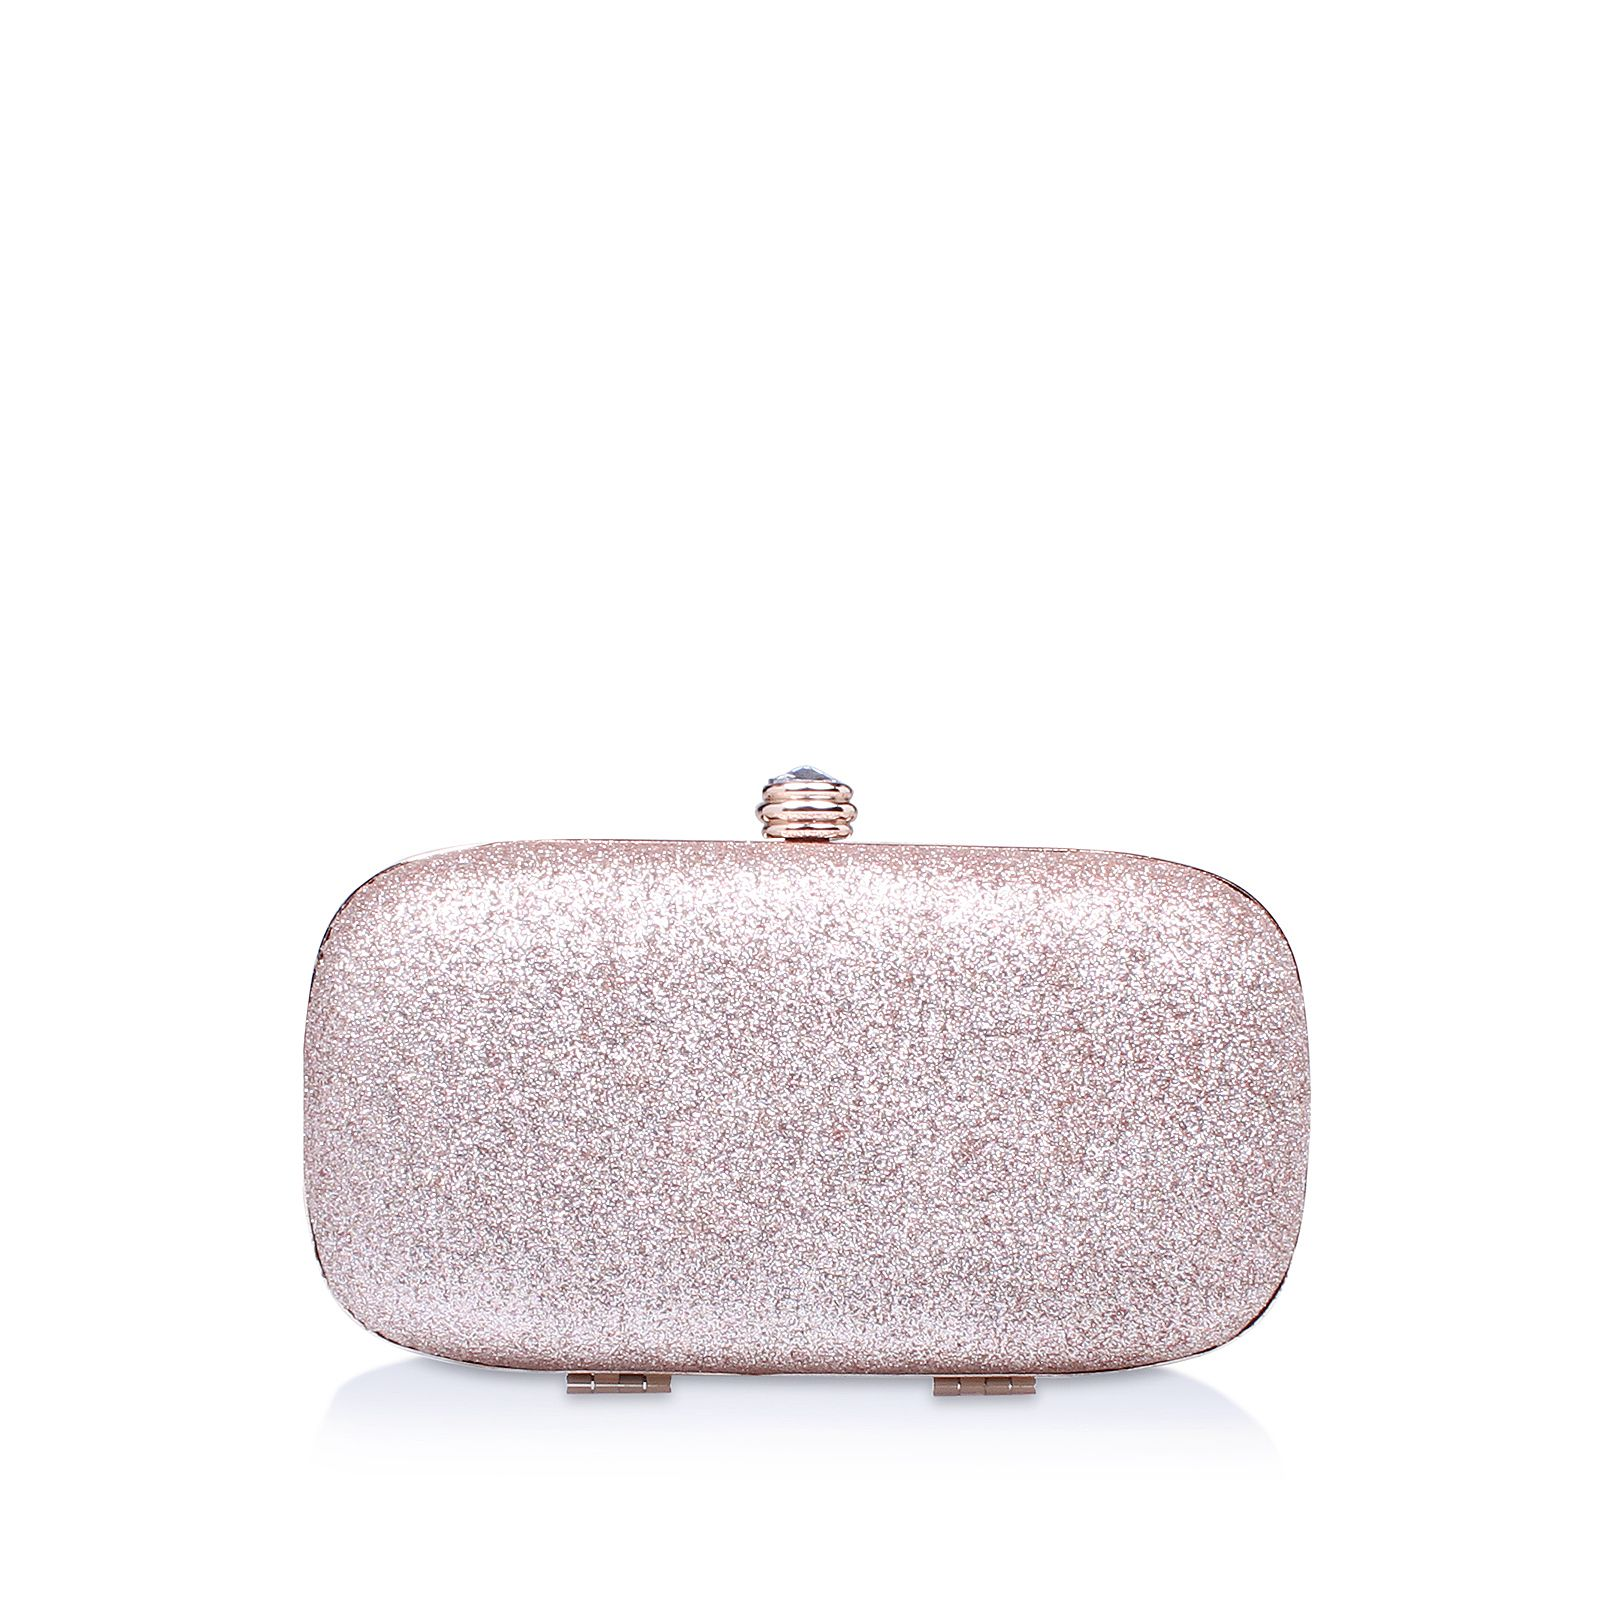 Carvela Darling 2 clutch bag, Silverlic